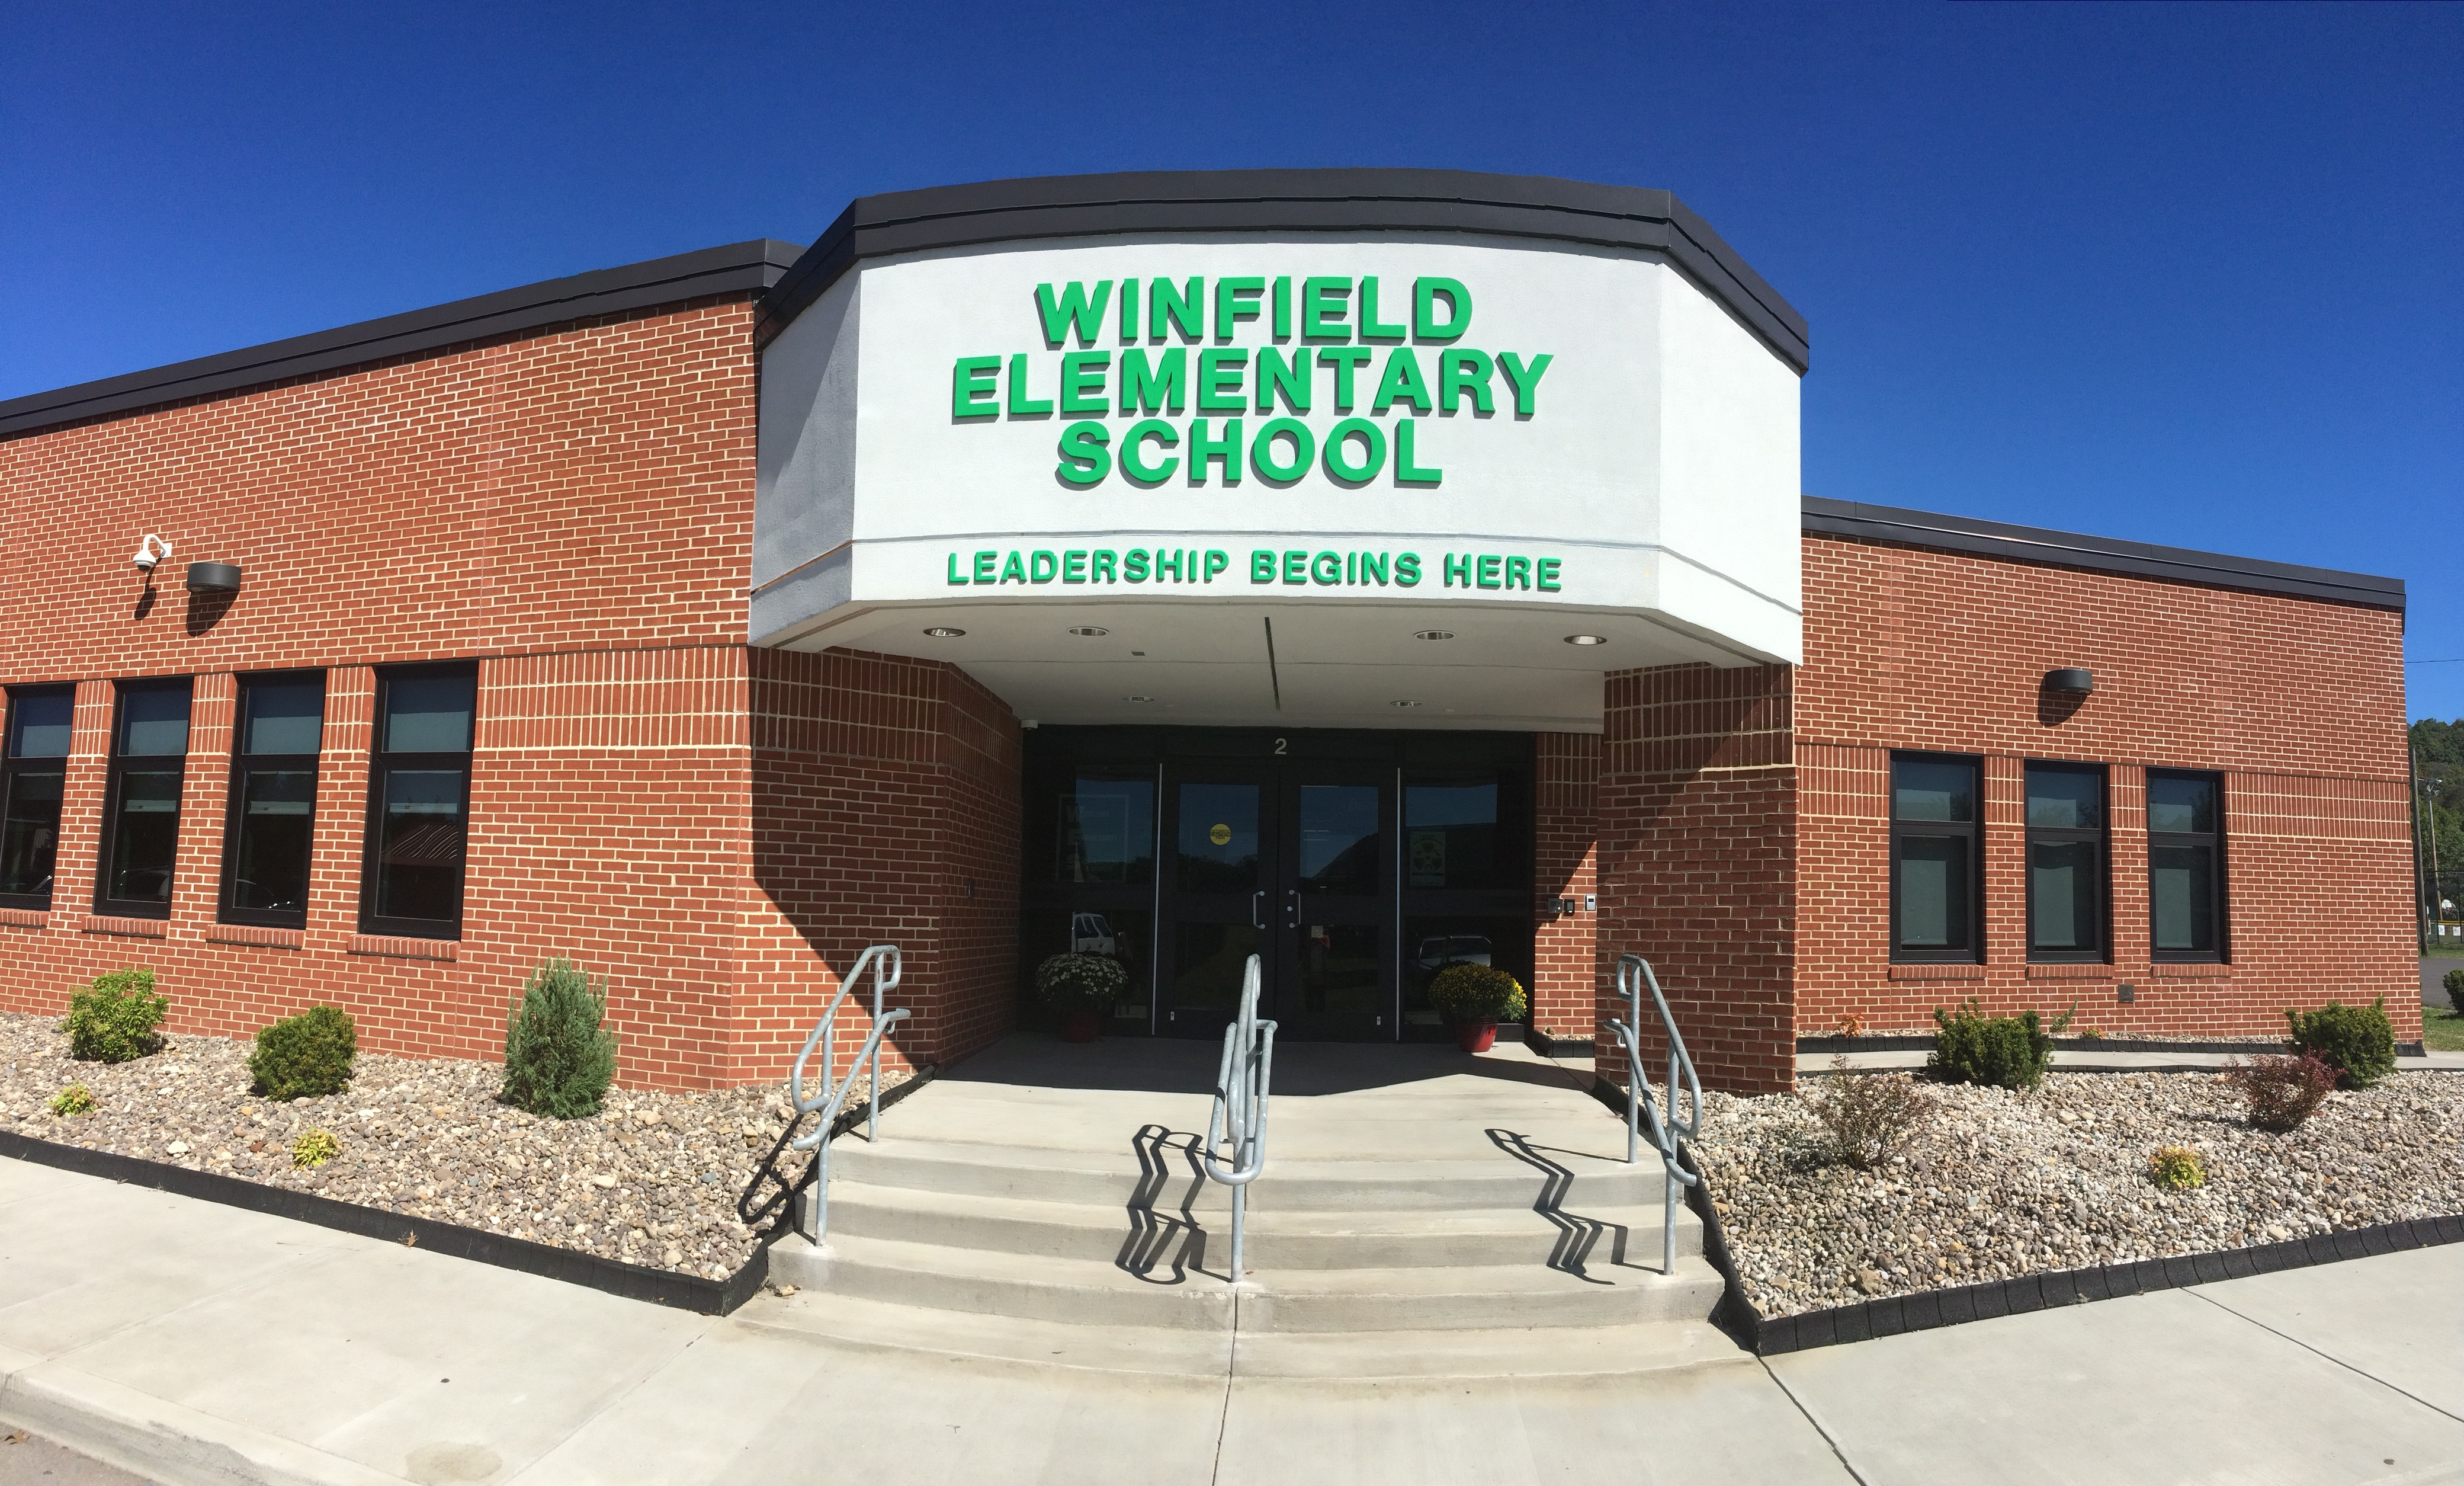 Main Entrance to Winfield Elementary School, Leadership Begins here.